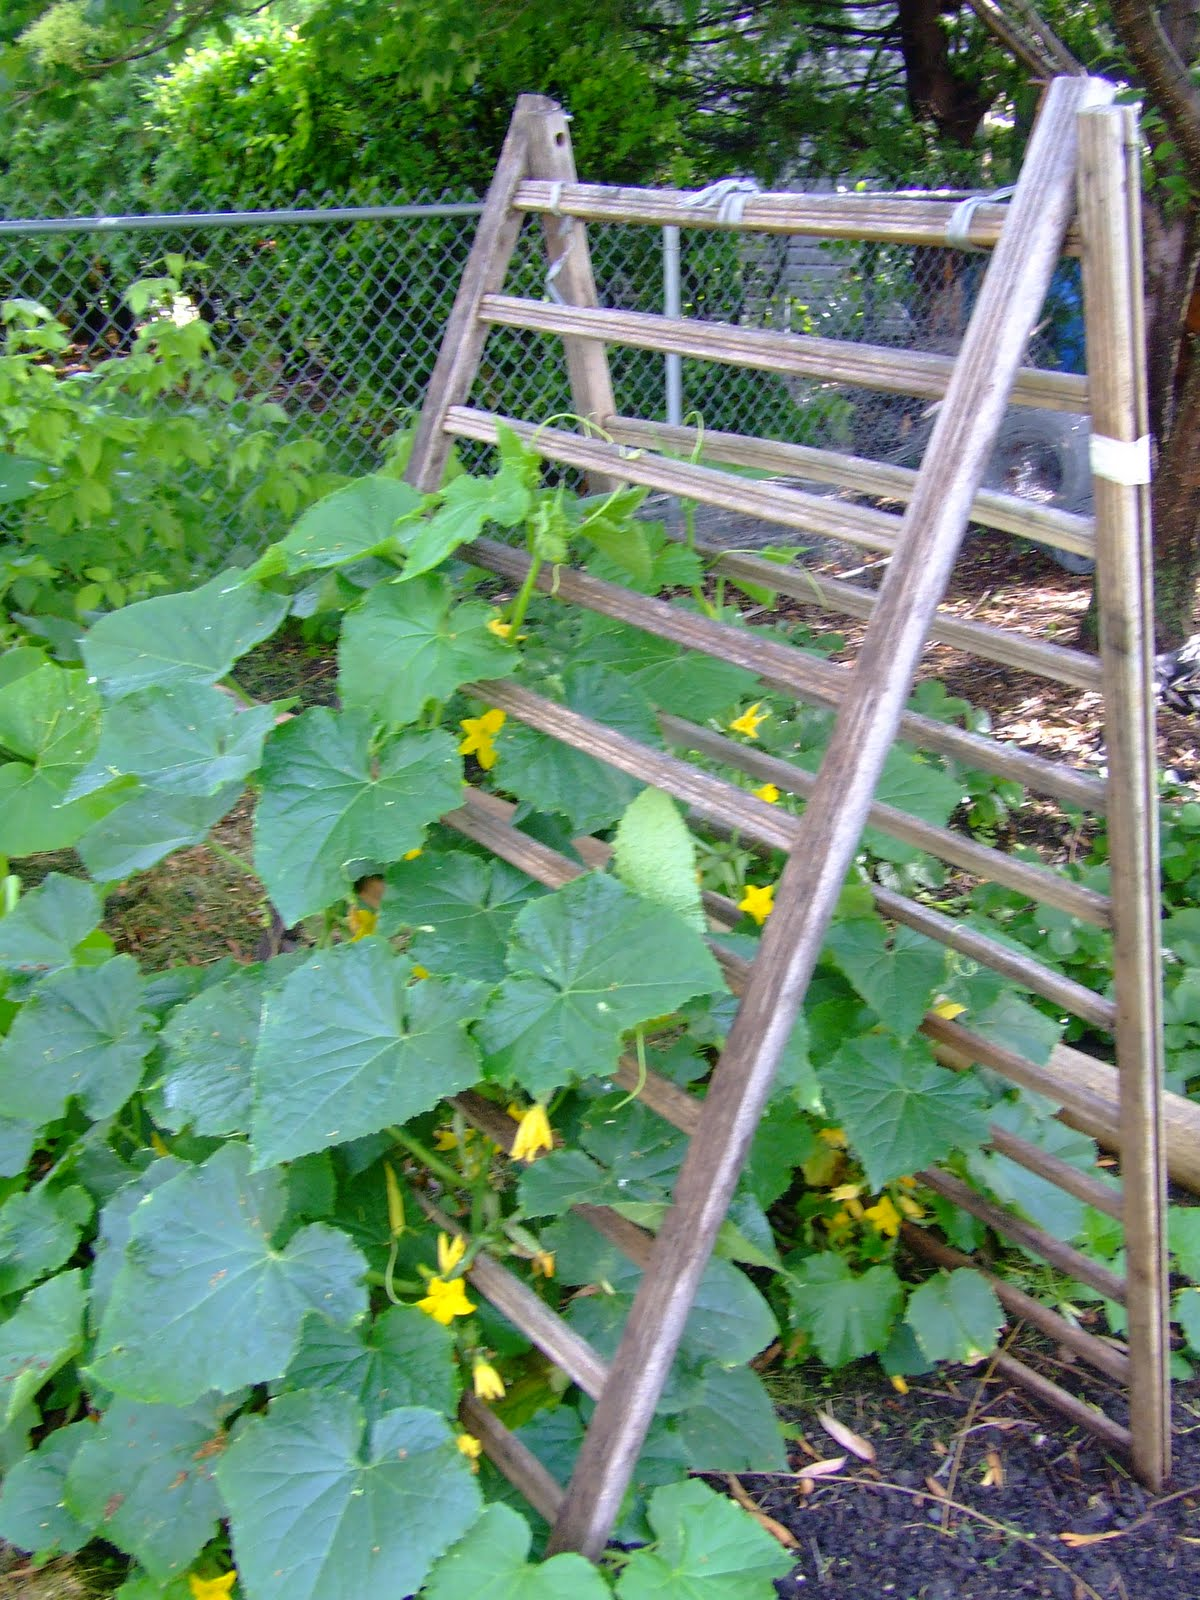 Ideas For Trellis In Garden Part - 47: Vertical Gardening: Trellis Training